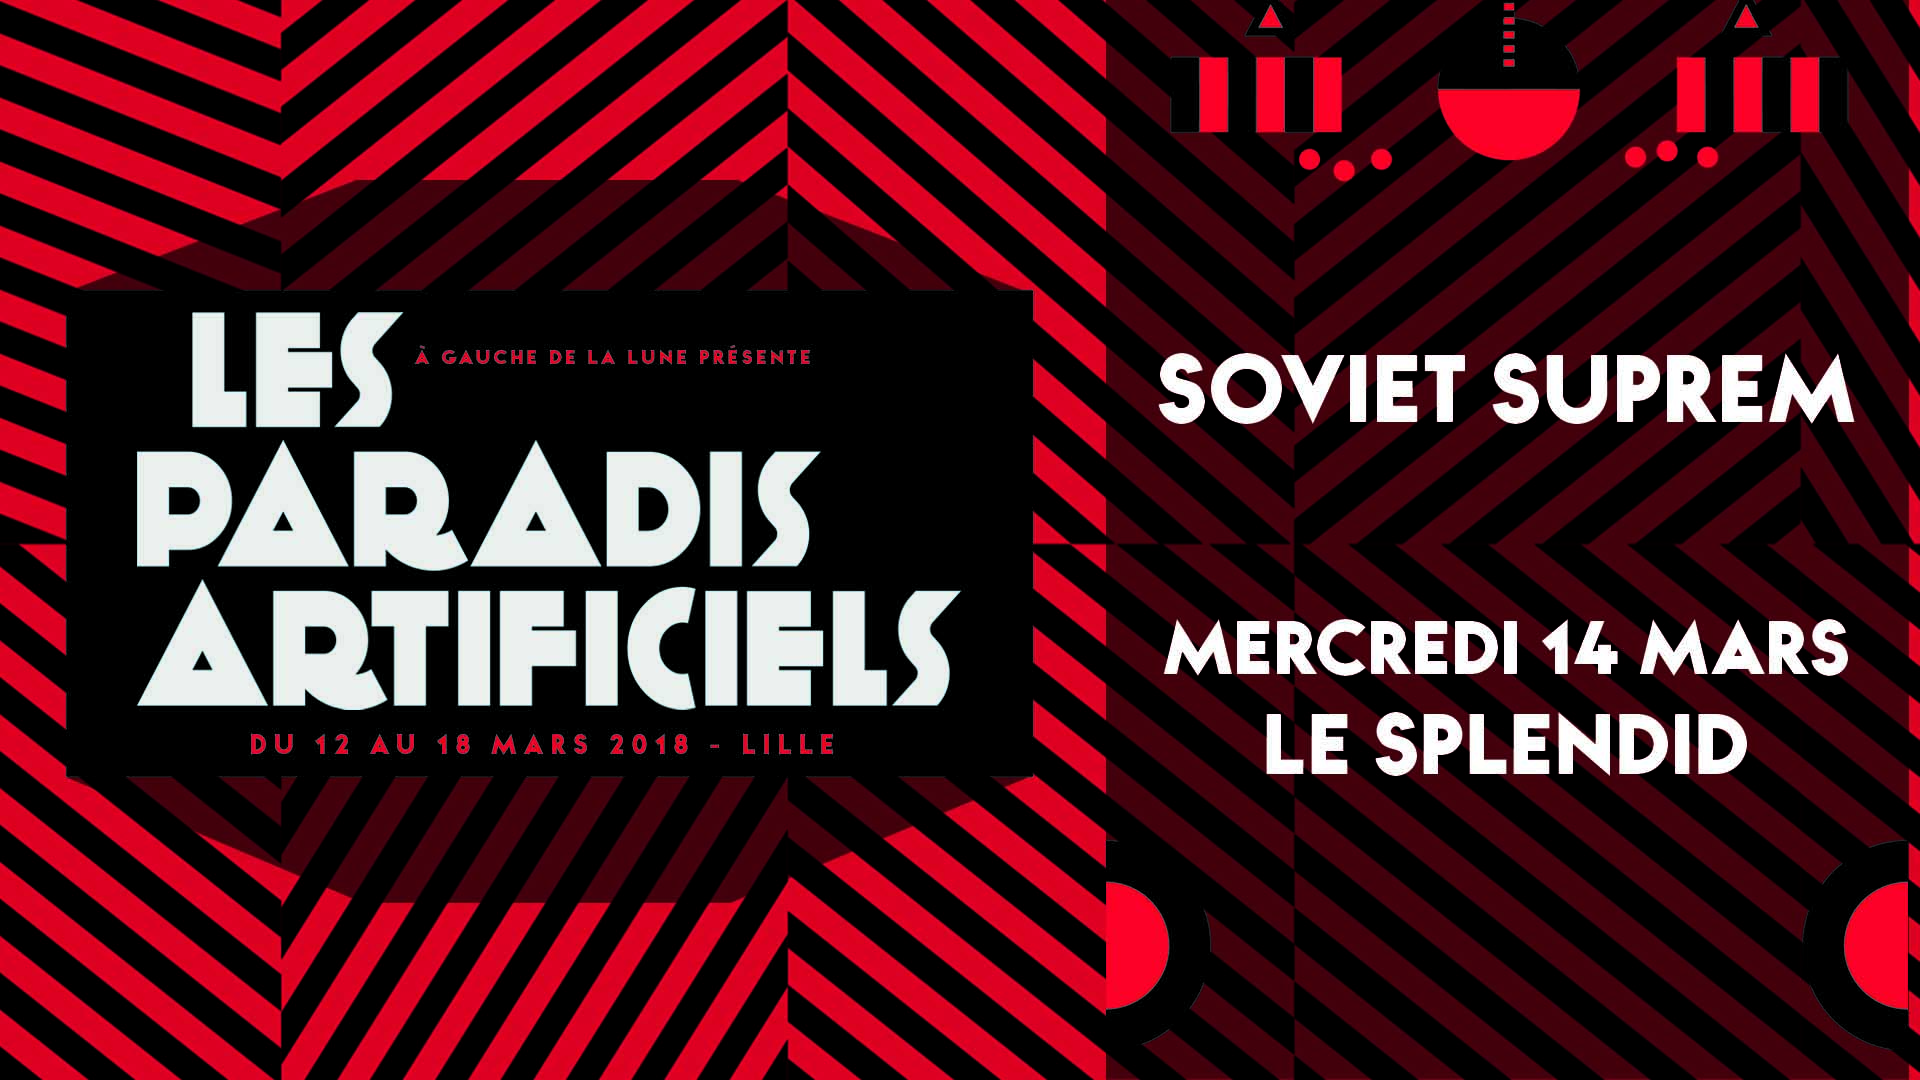 Paradis Artificiels 2018 : Soviet Suprem + The Liquidators